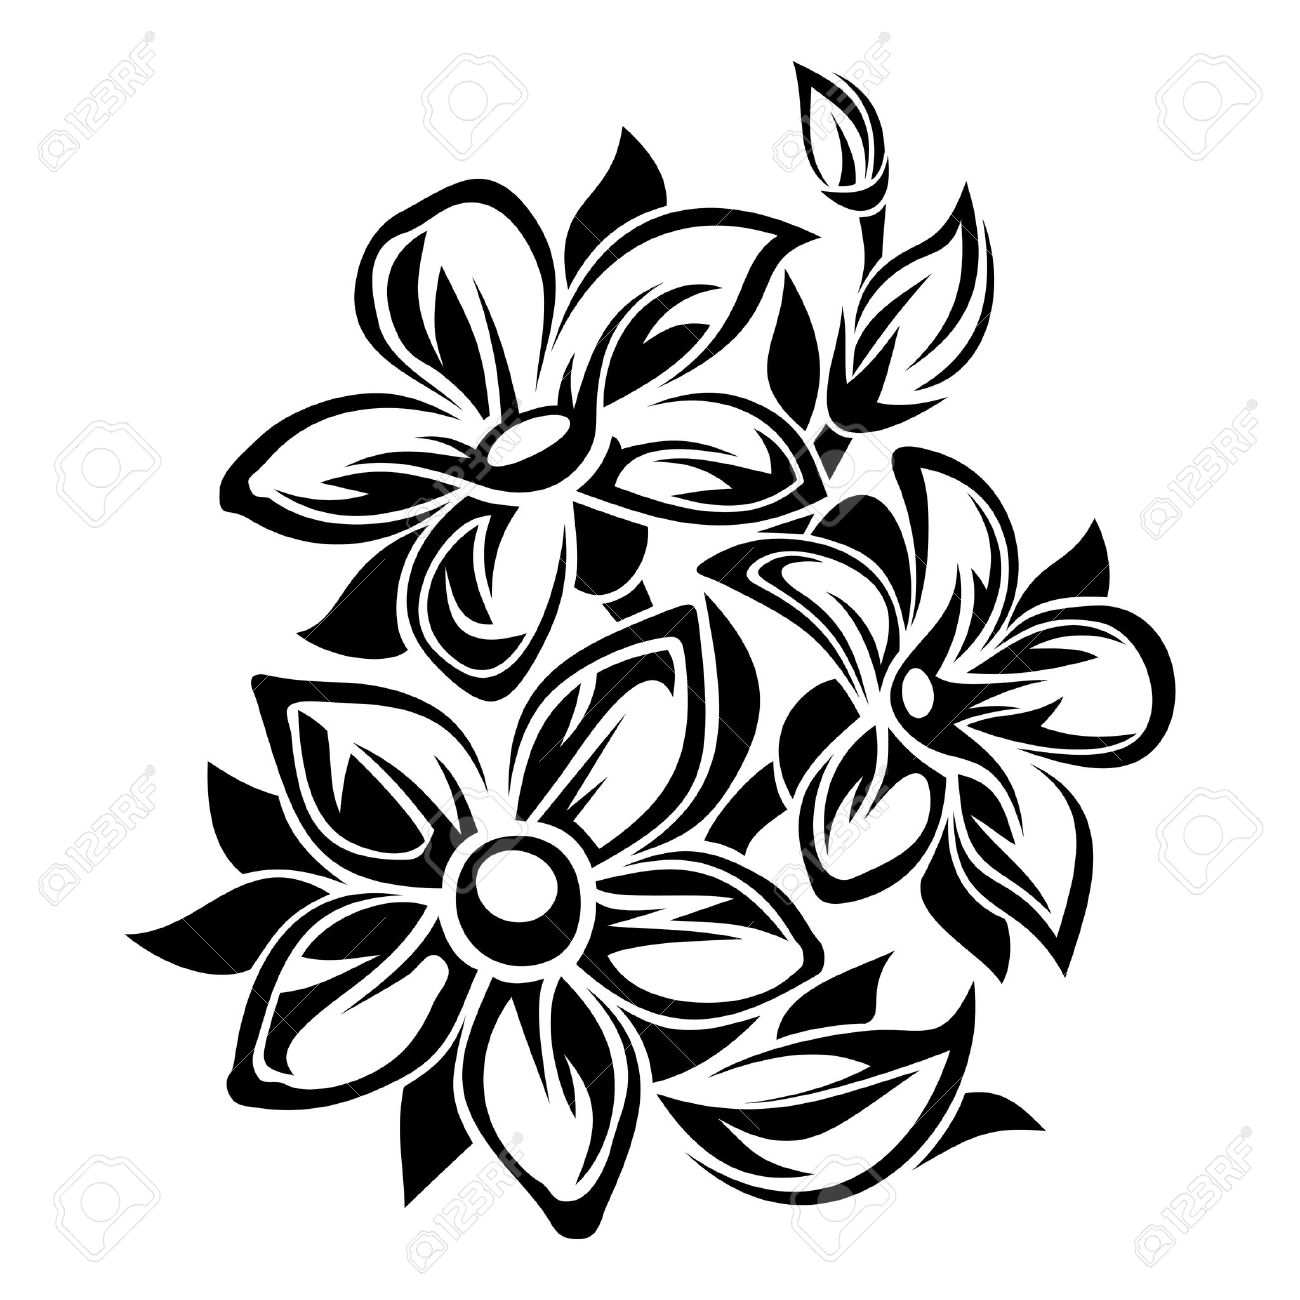 Flower Black And White Good Flowers Black And White Ornament Vector